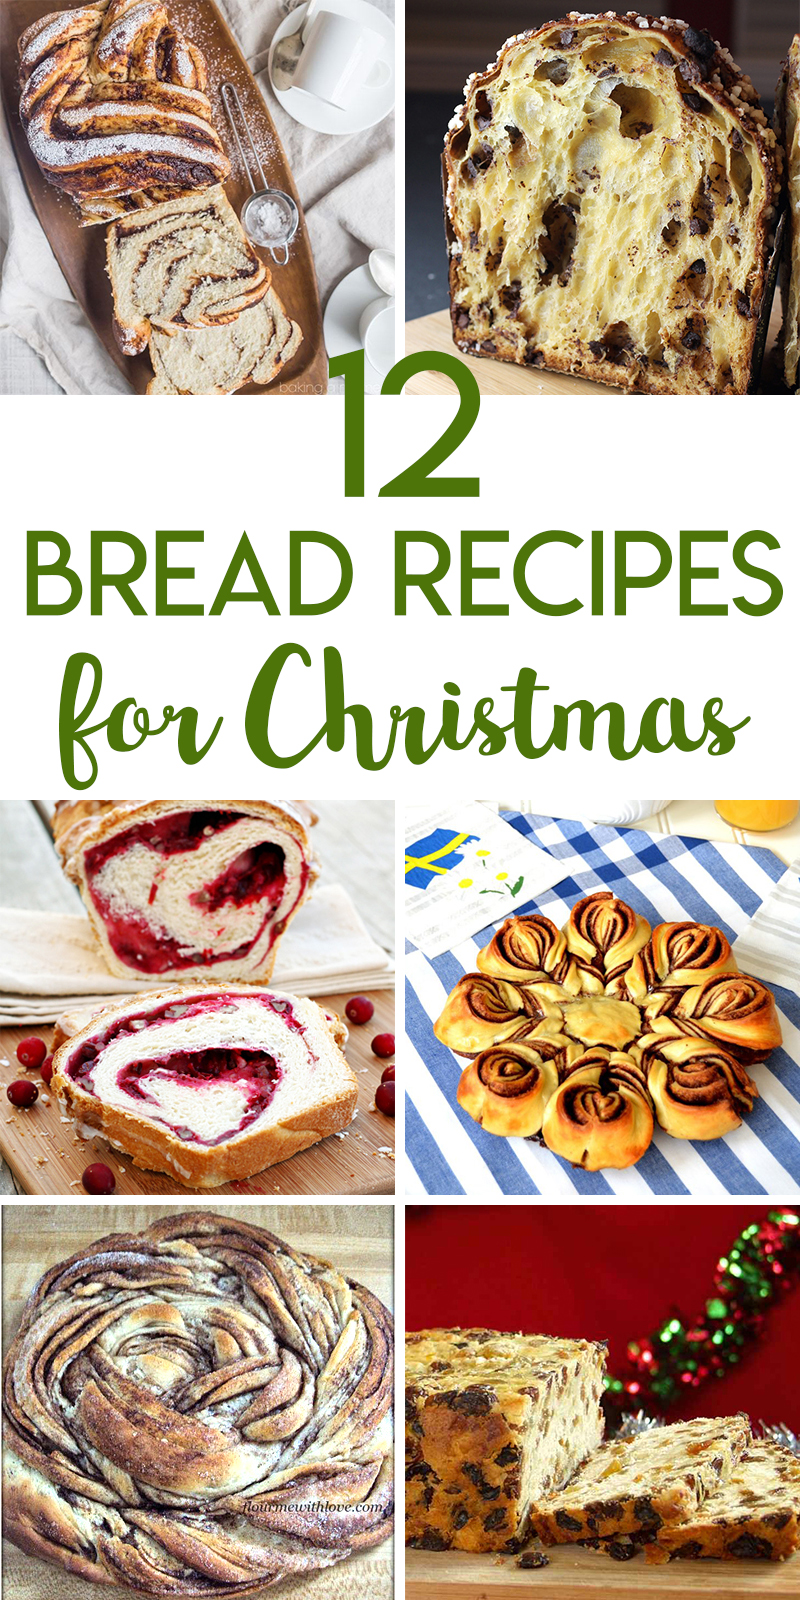 Christmas bread recipes